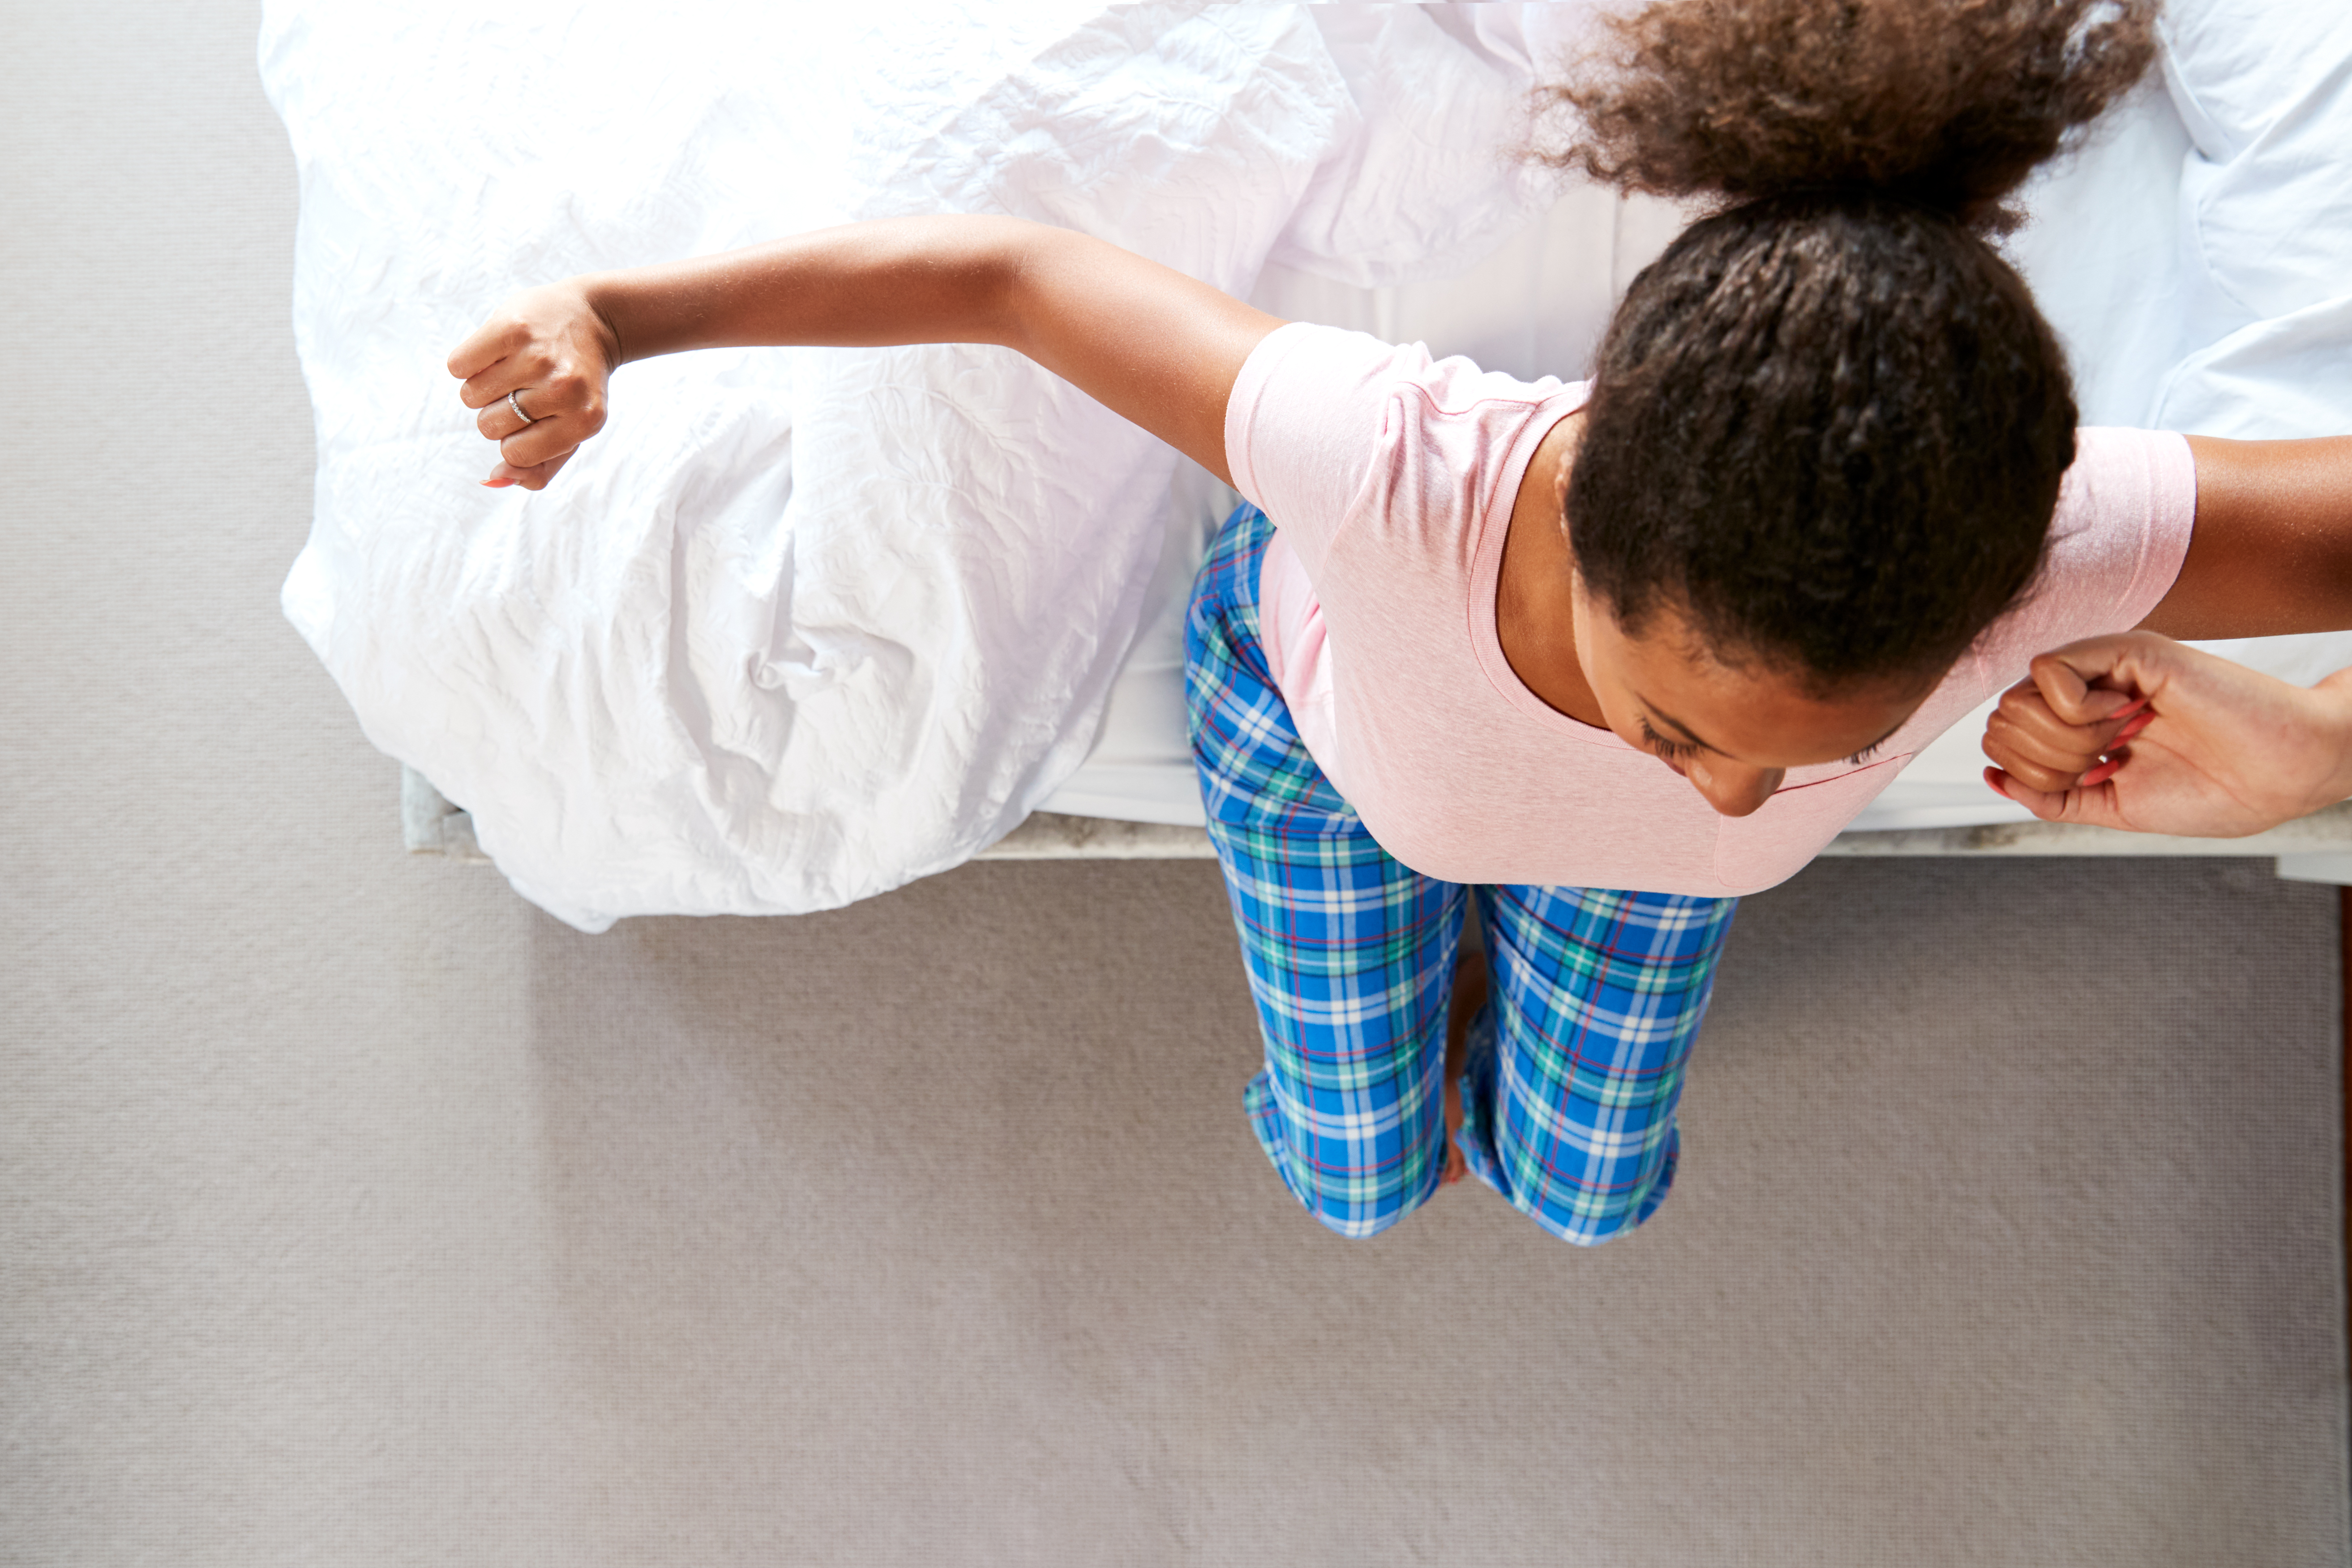 Overhead View Of Woman Wearing Pajamas Stretching As She Gets Out Of Bed At Home @Lunar Sleep Systems